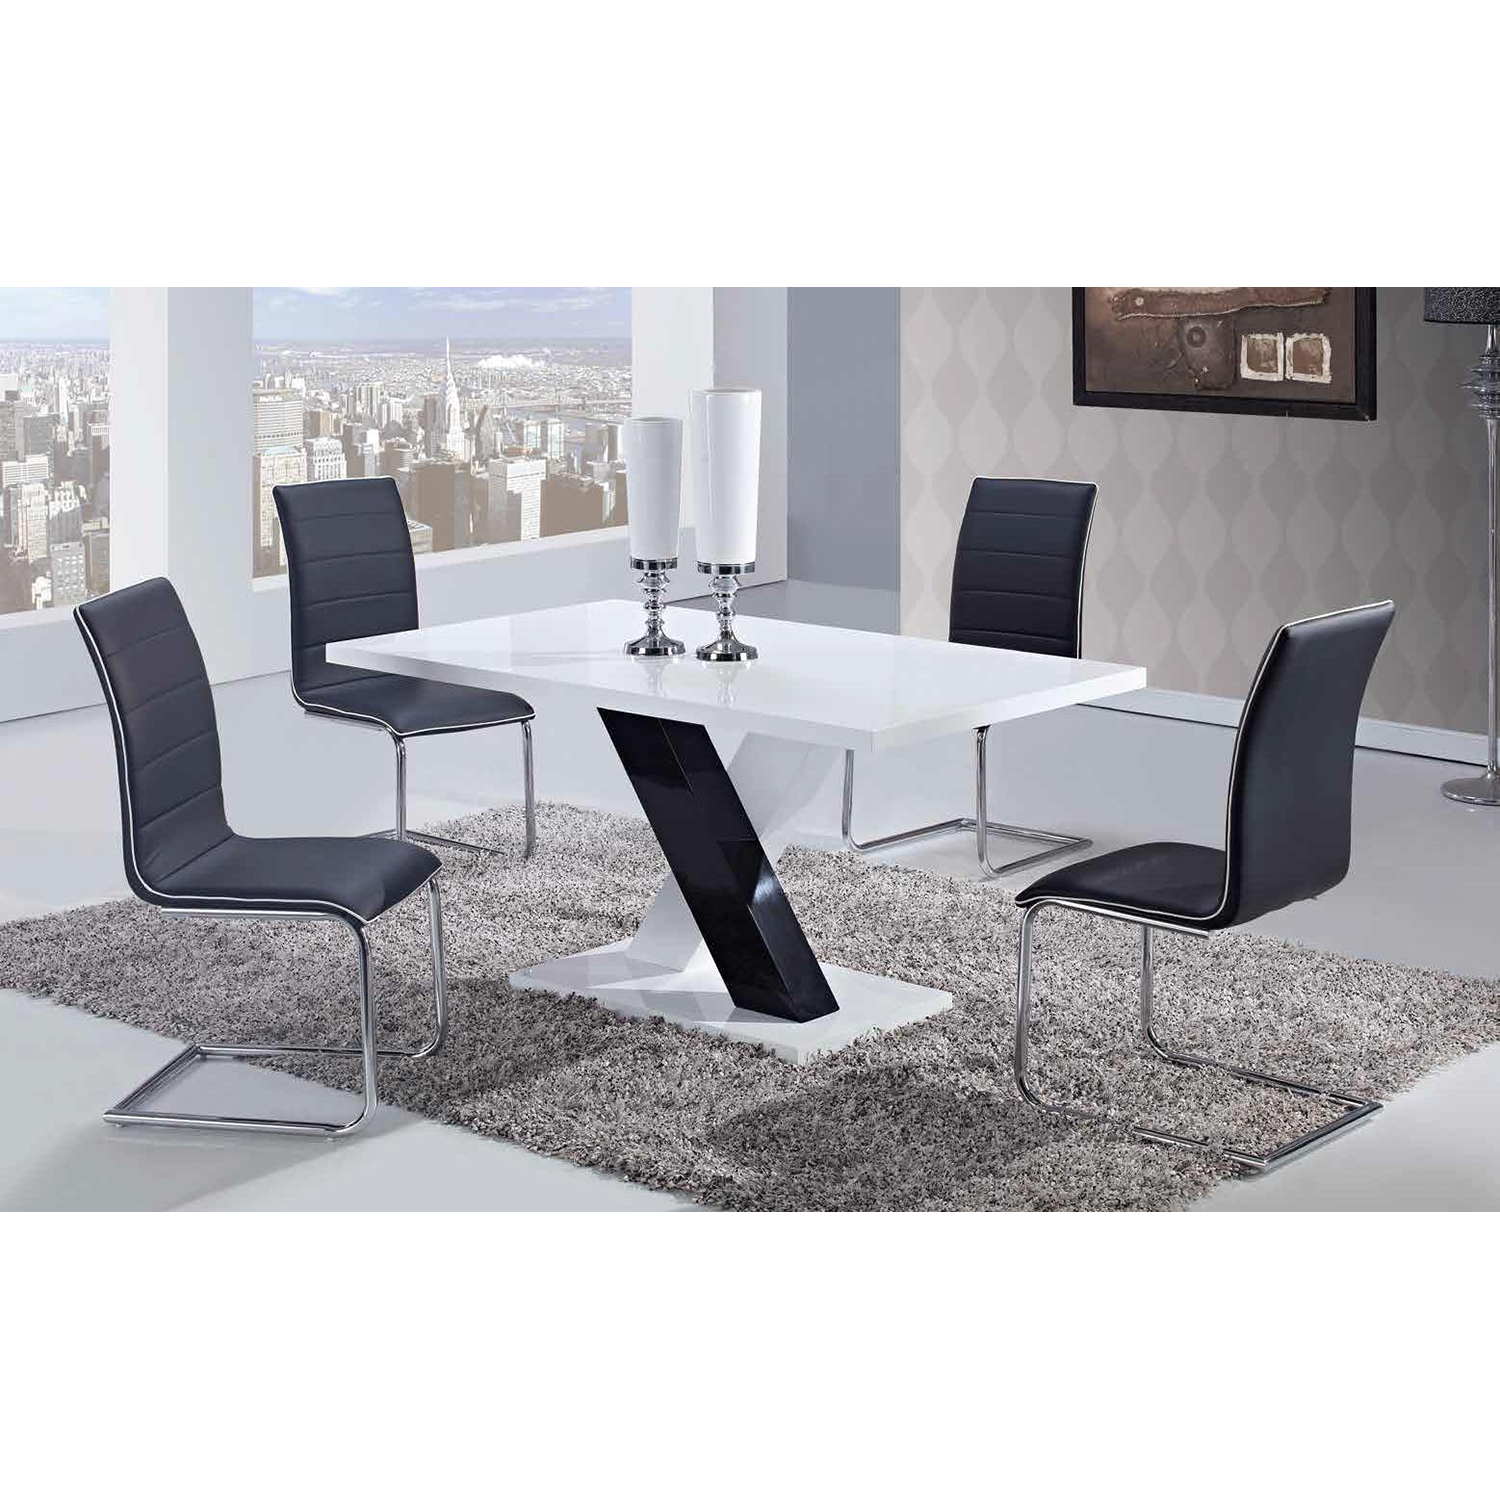 Black Upholstered Dining Side Chair with Chrome Legs DCG  : d490dc bl m 1 from www.dcgstores.com size 1000 x 1000 jpeg 409kB